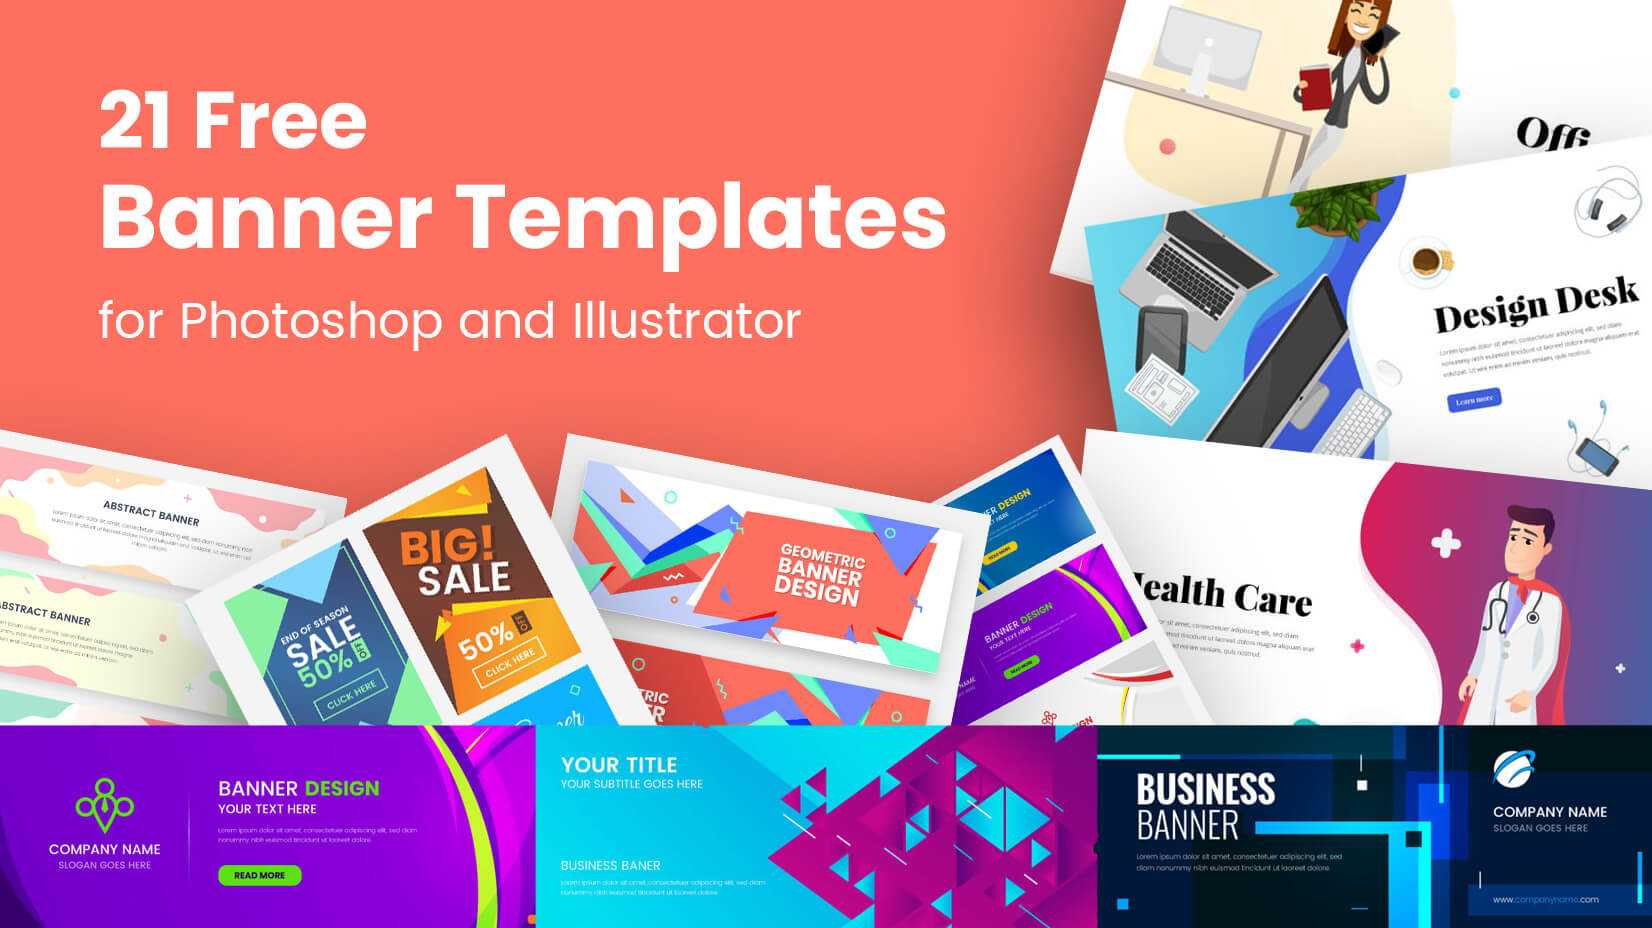 21 Free Banner Templates For Photoshop And Illustrator With Regard To Vinyl Banner Design Templates